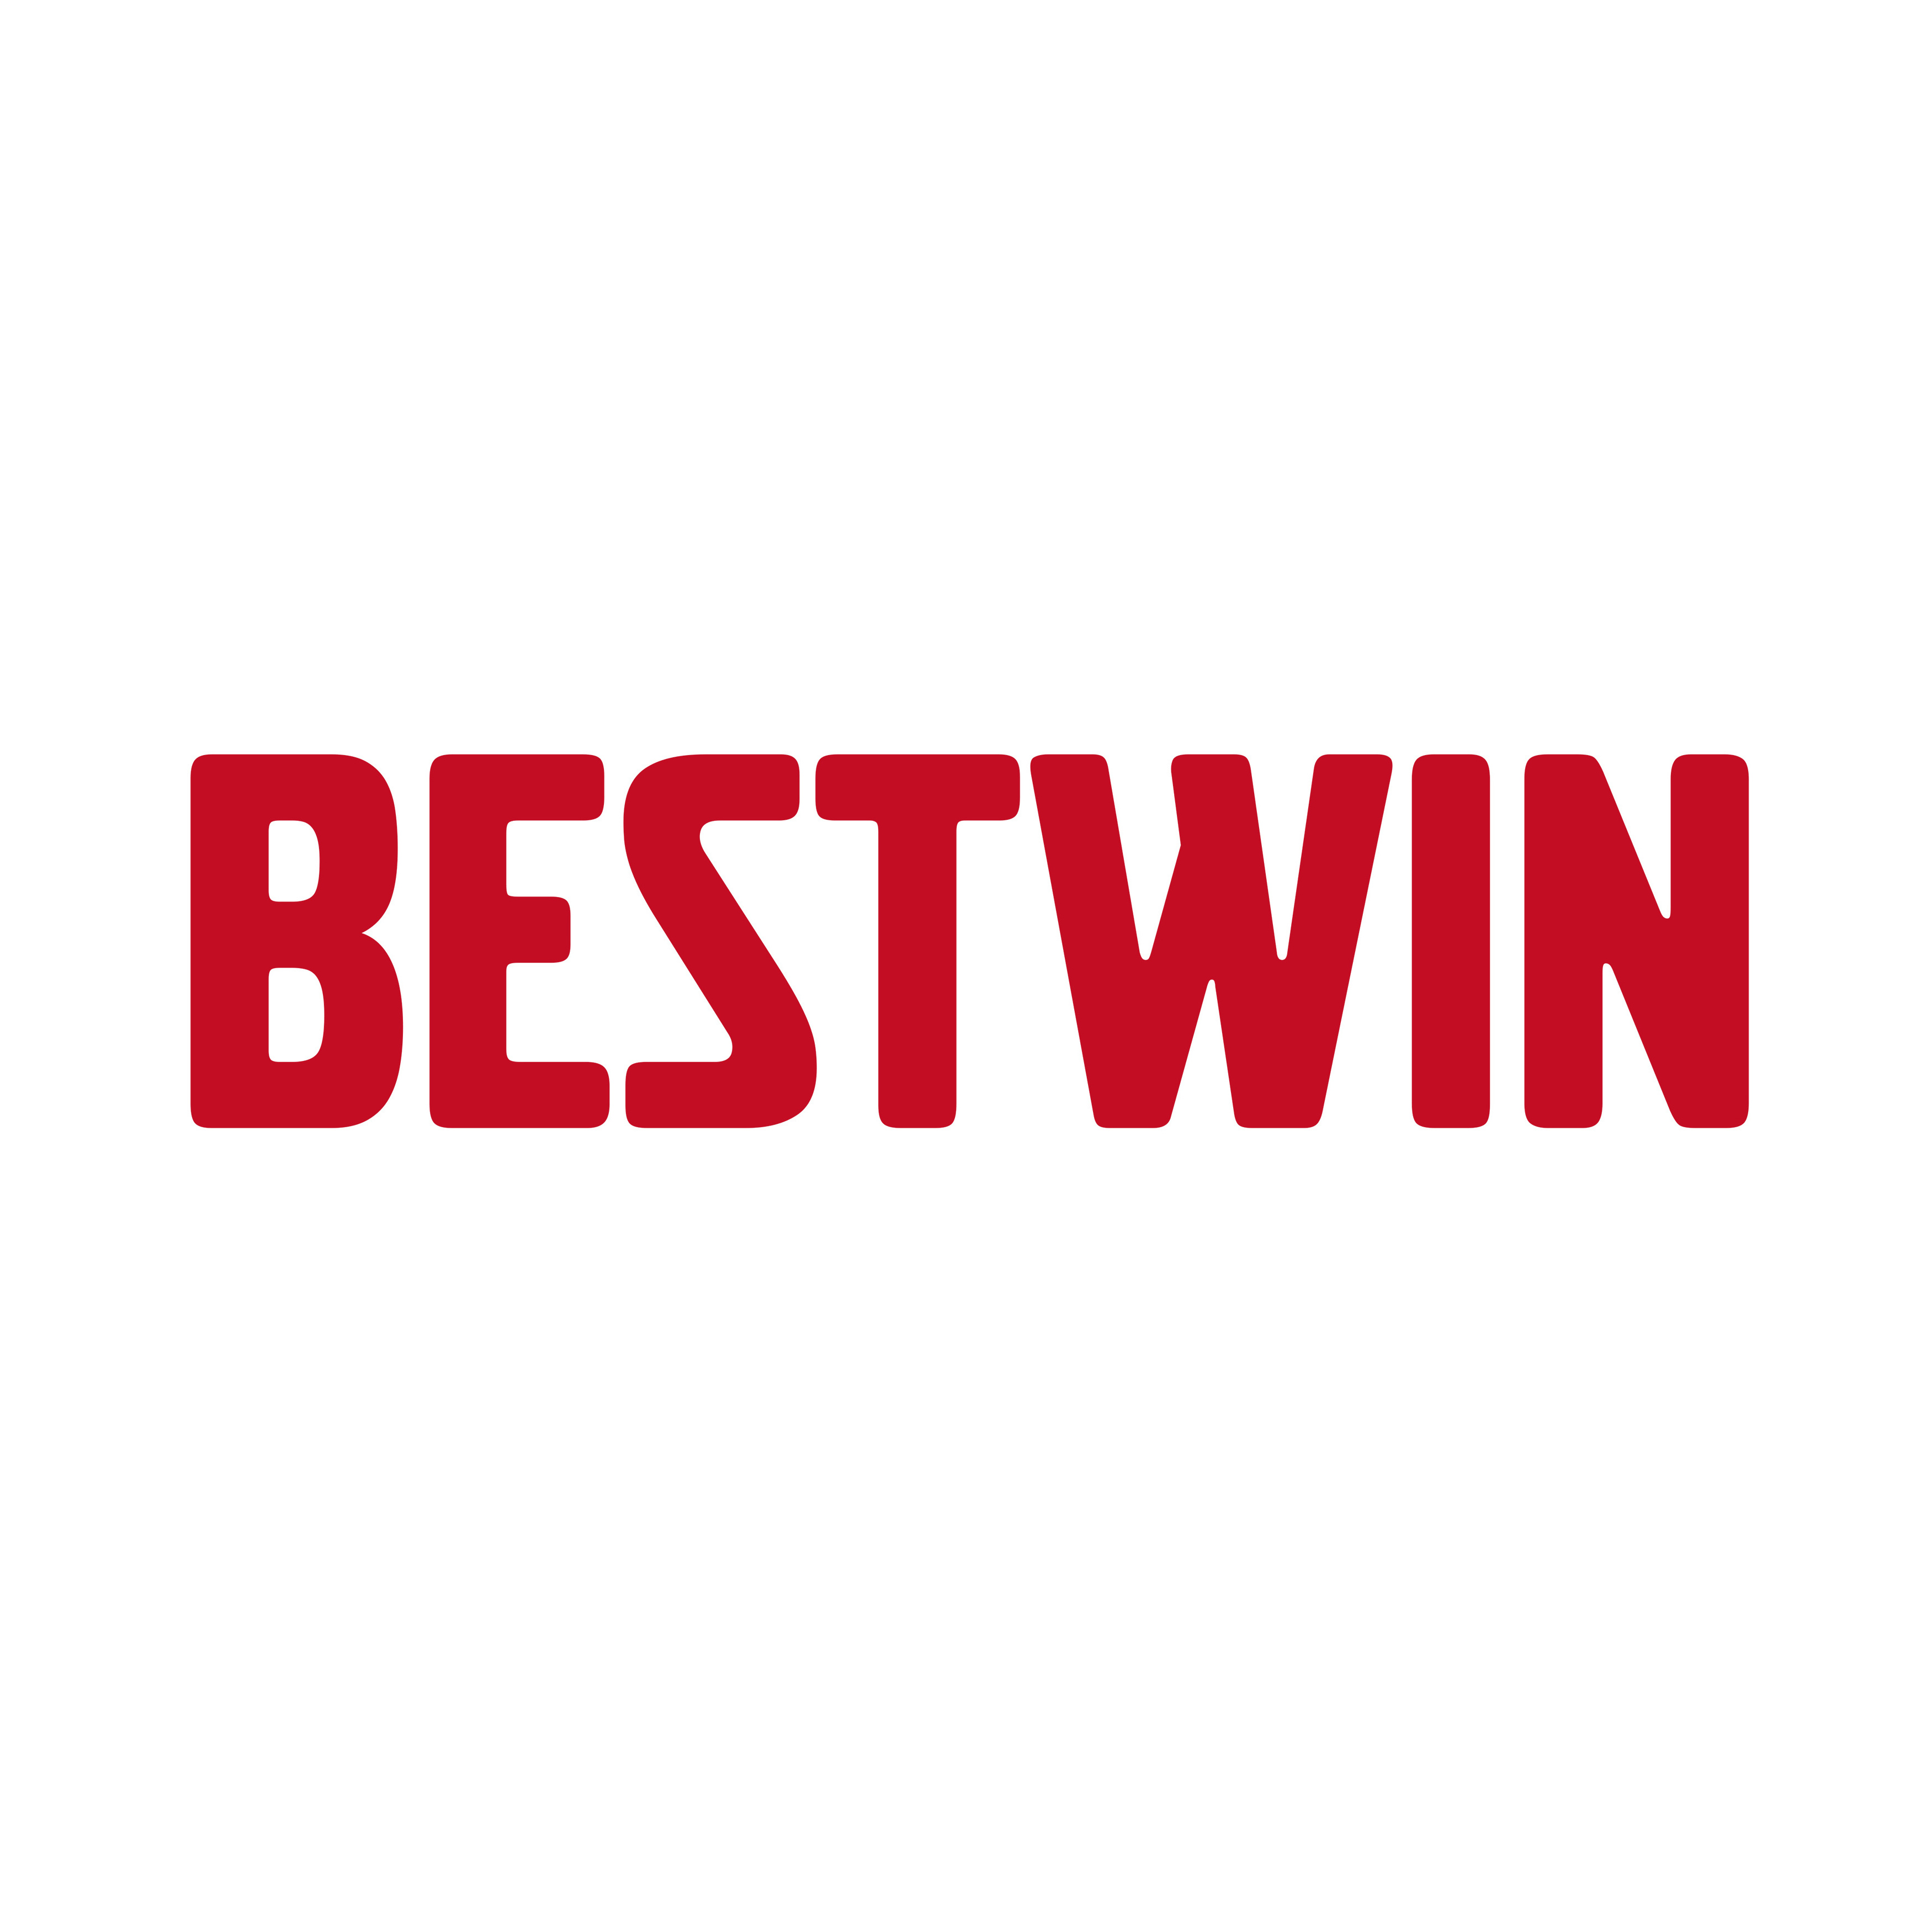 Nanjing Bestwin Machinery Co., Ltd